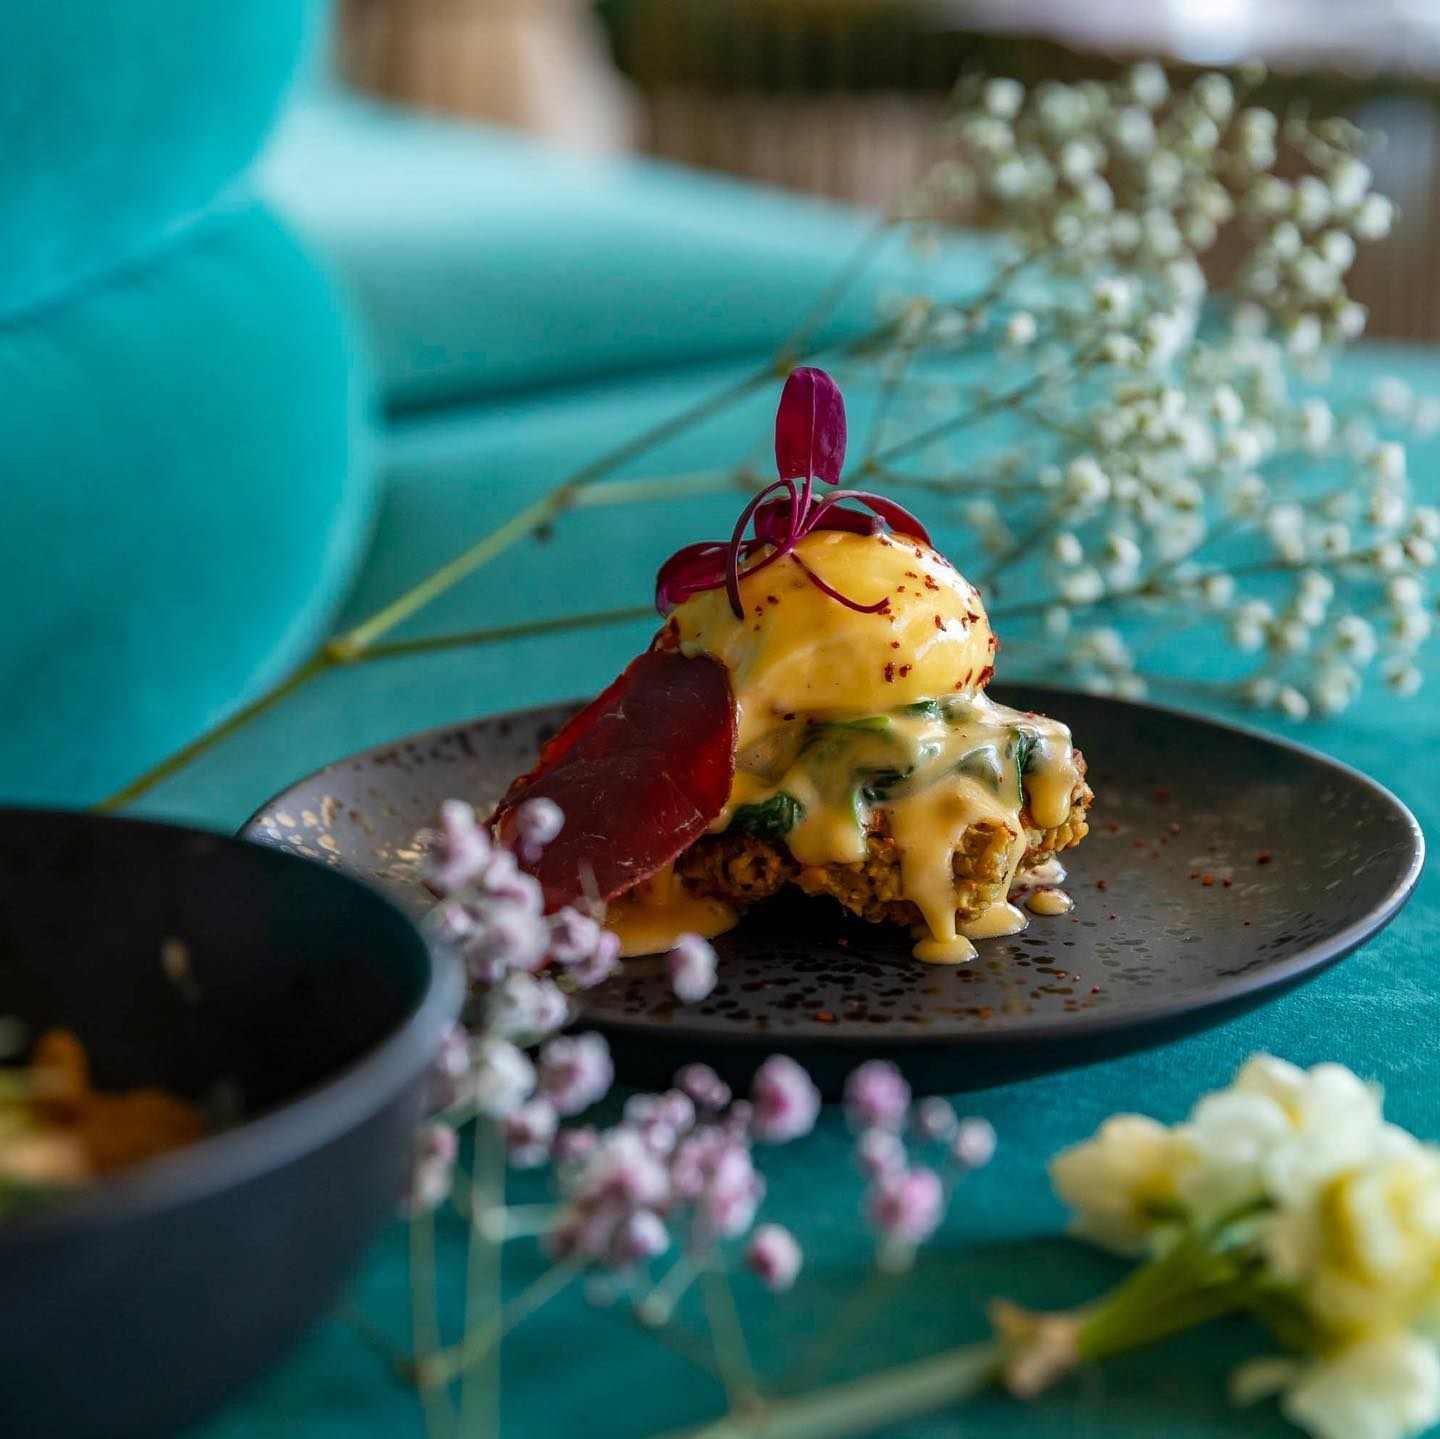 A close-up shot of a colourful brunch egg-dish, garnished with purple flowers and dripping with Hollandaise sauce.